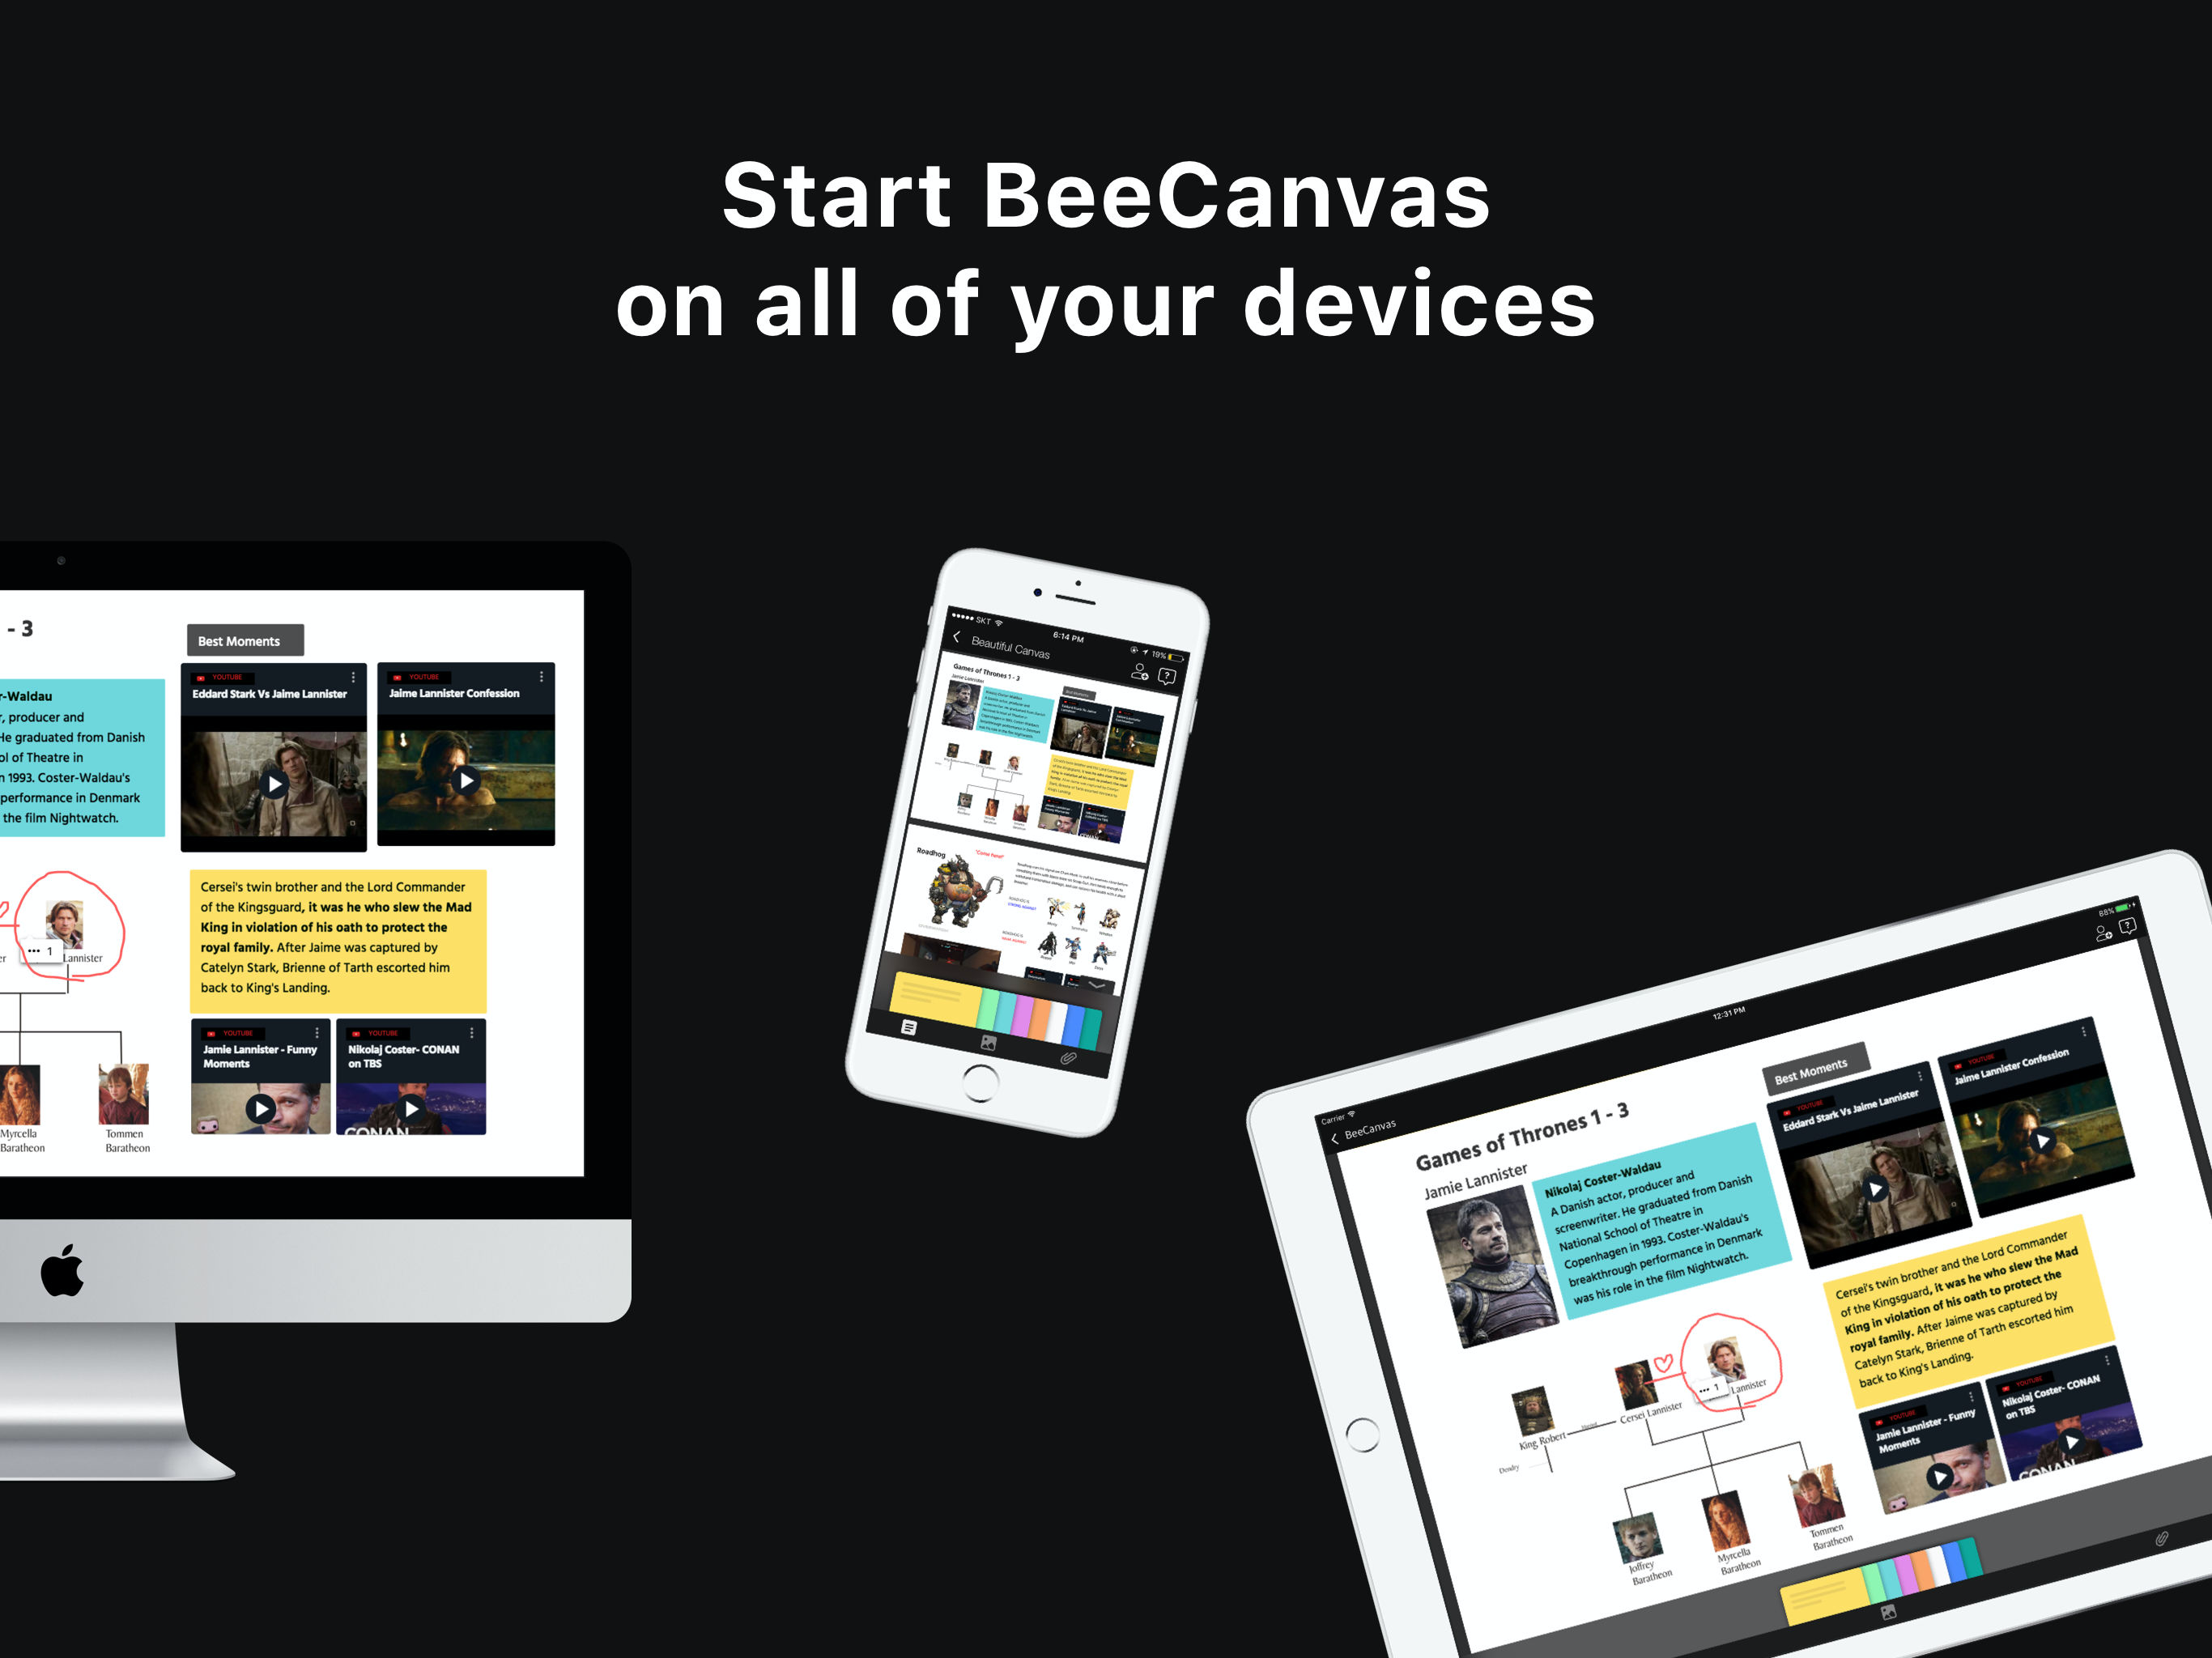 Start BeeCanvas on all of your devices.